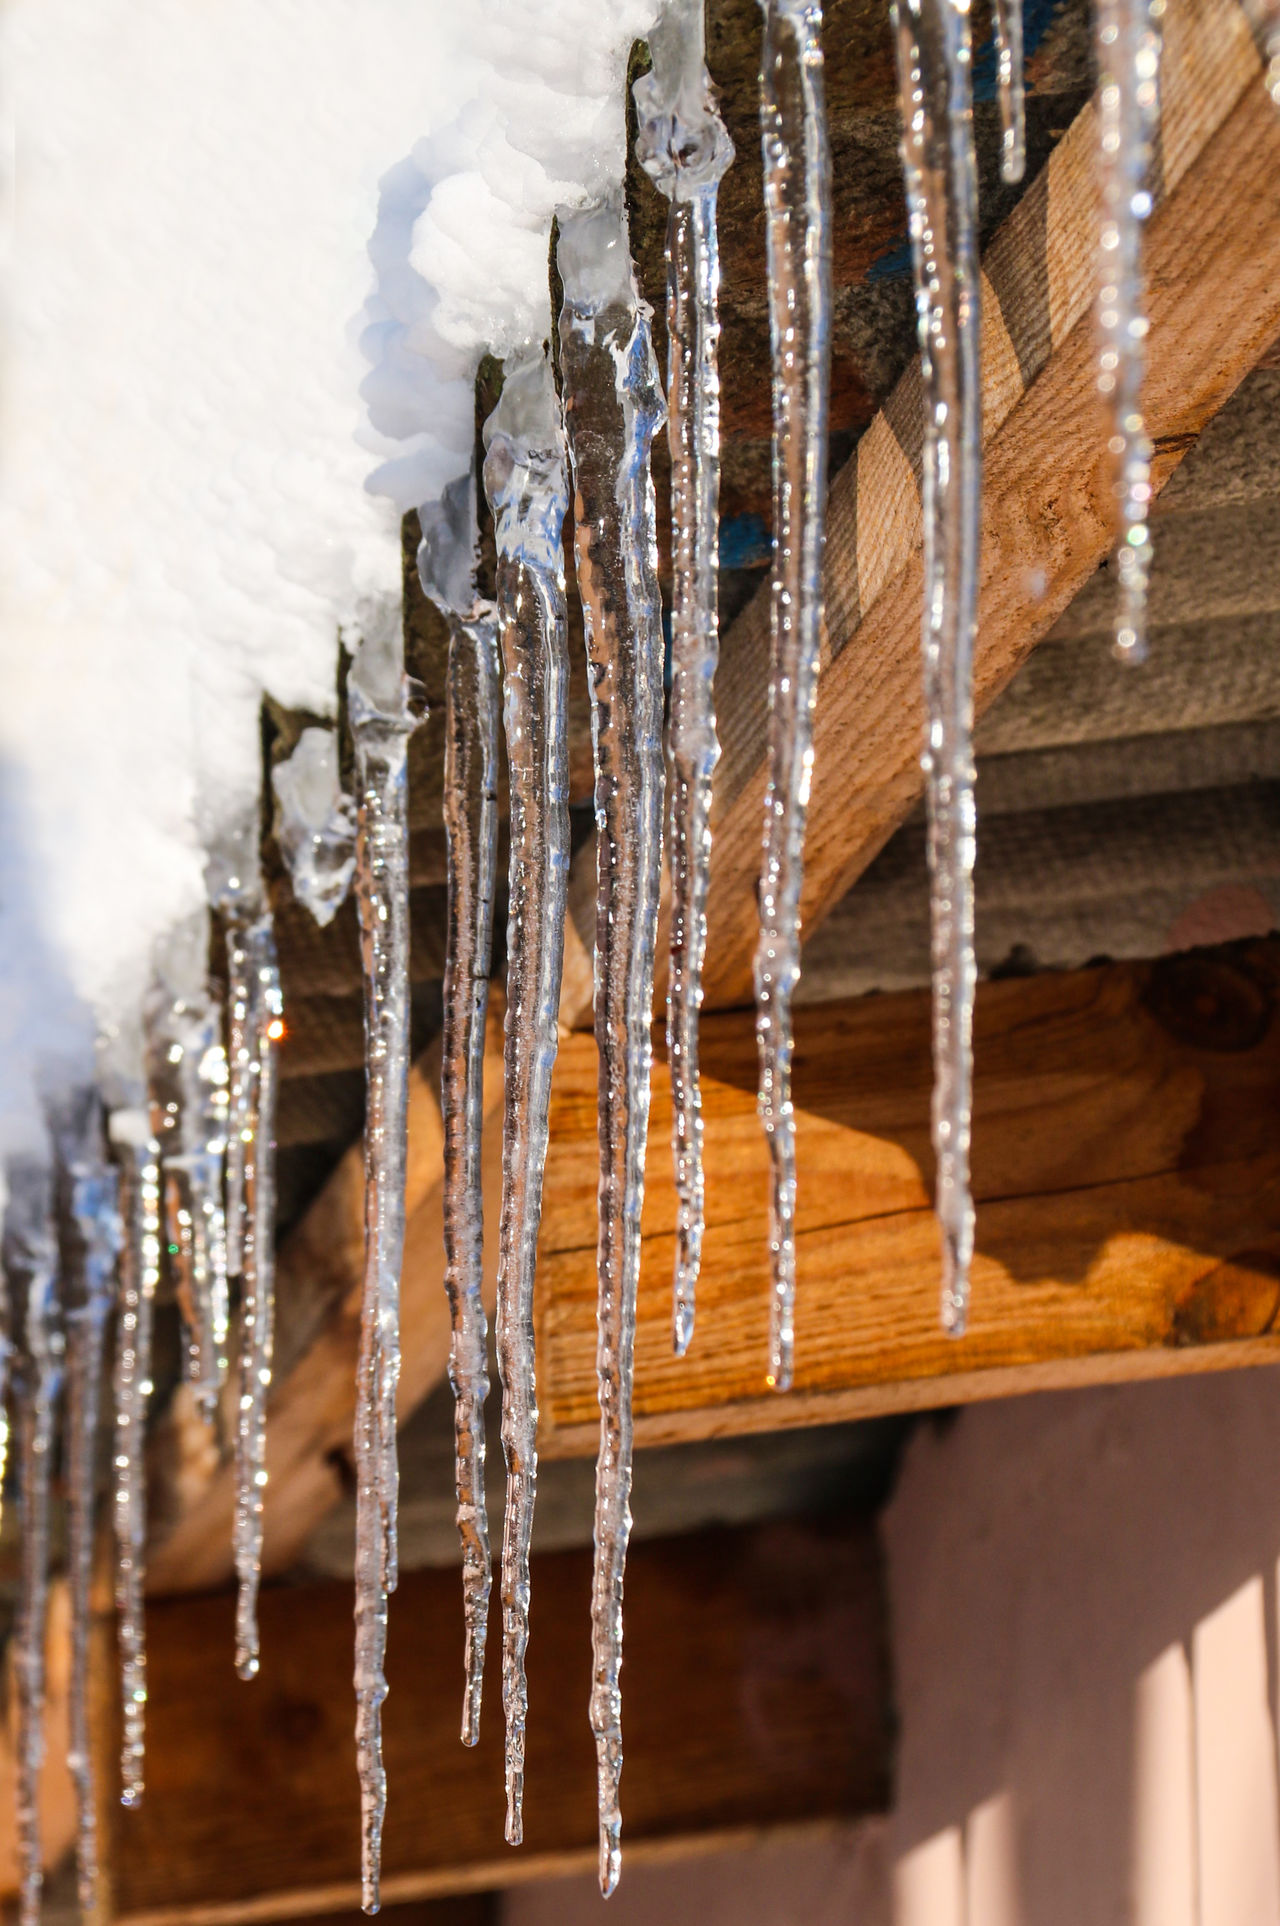 Close-up Danger Danger! Day Drip Drop Ice Icicles Nature No People Outdoors Roof Snowbreak Thaw